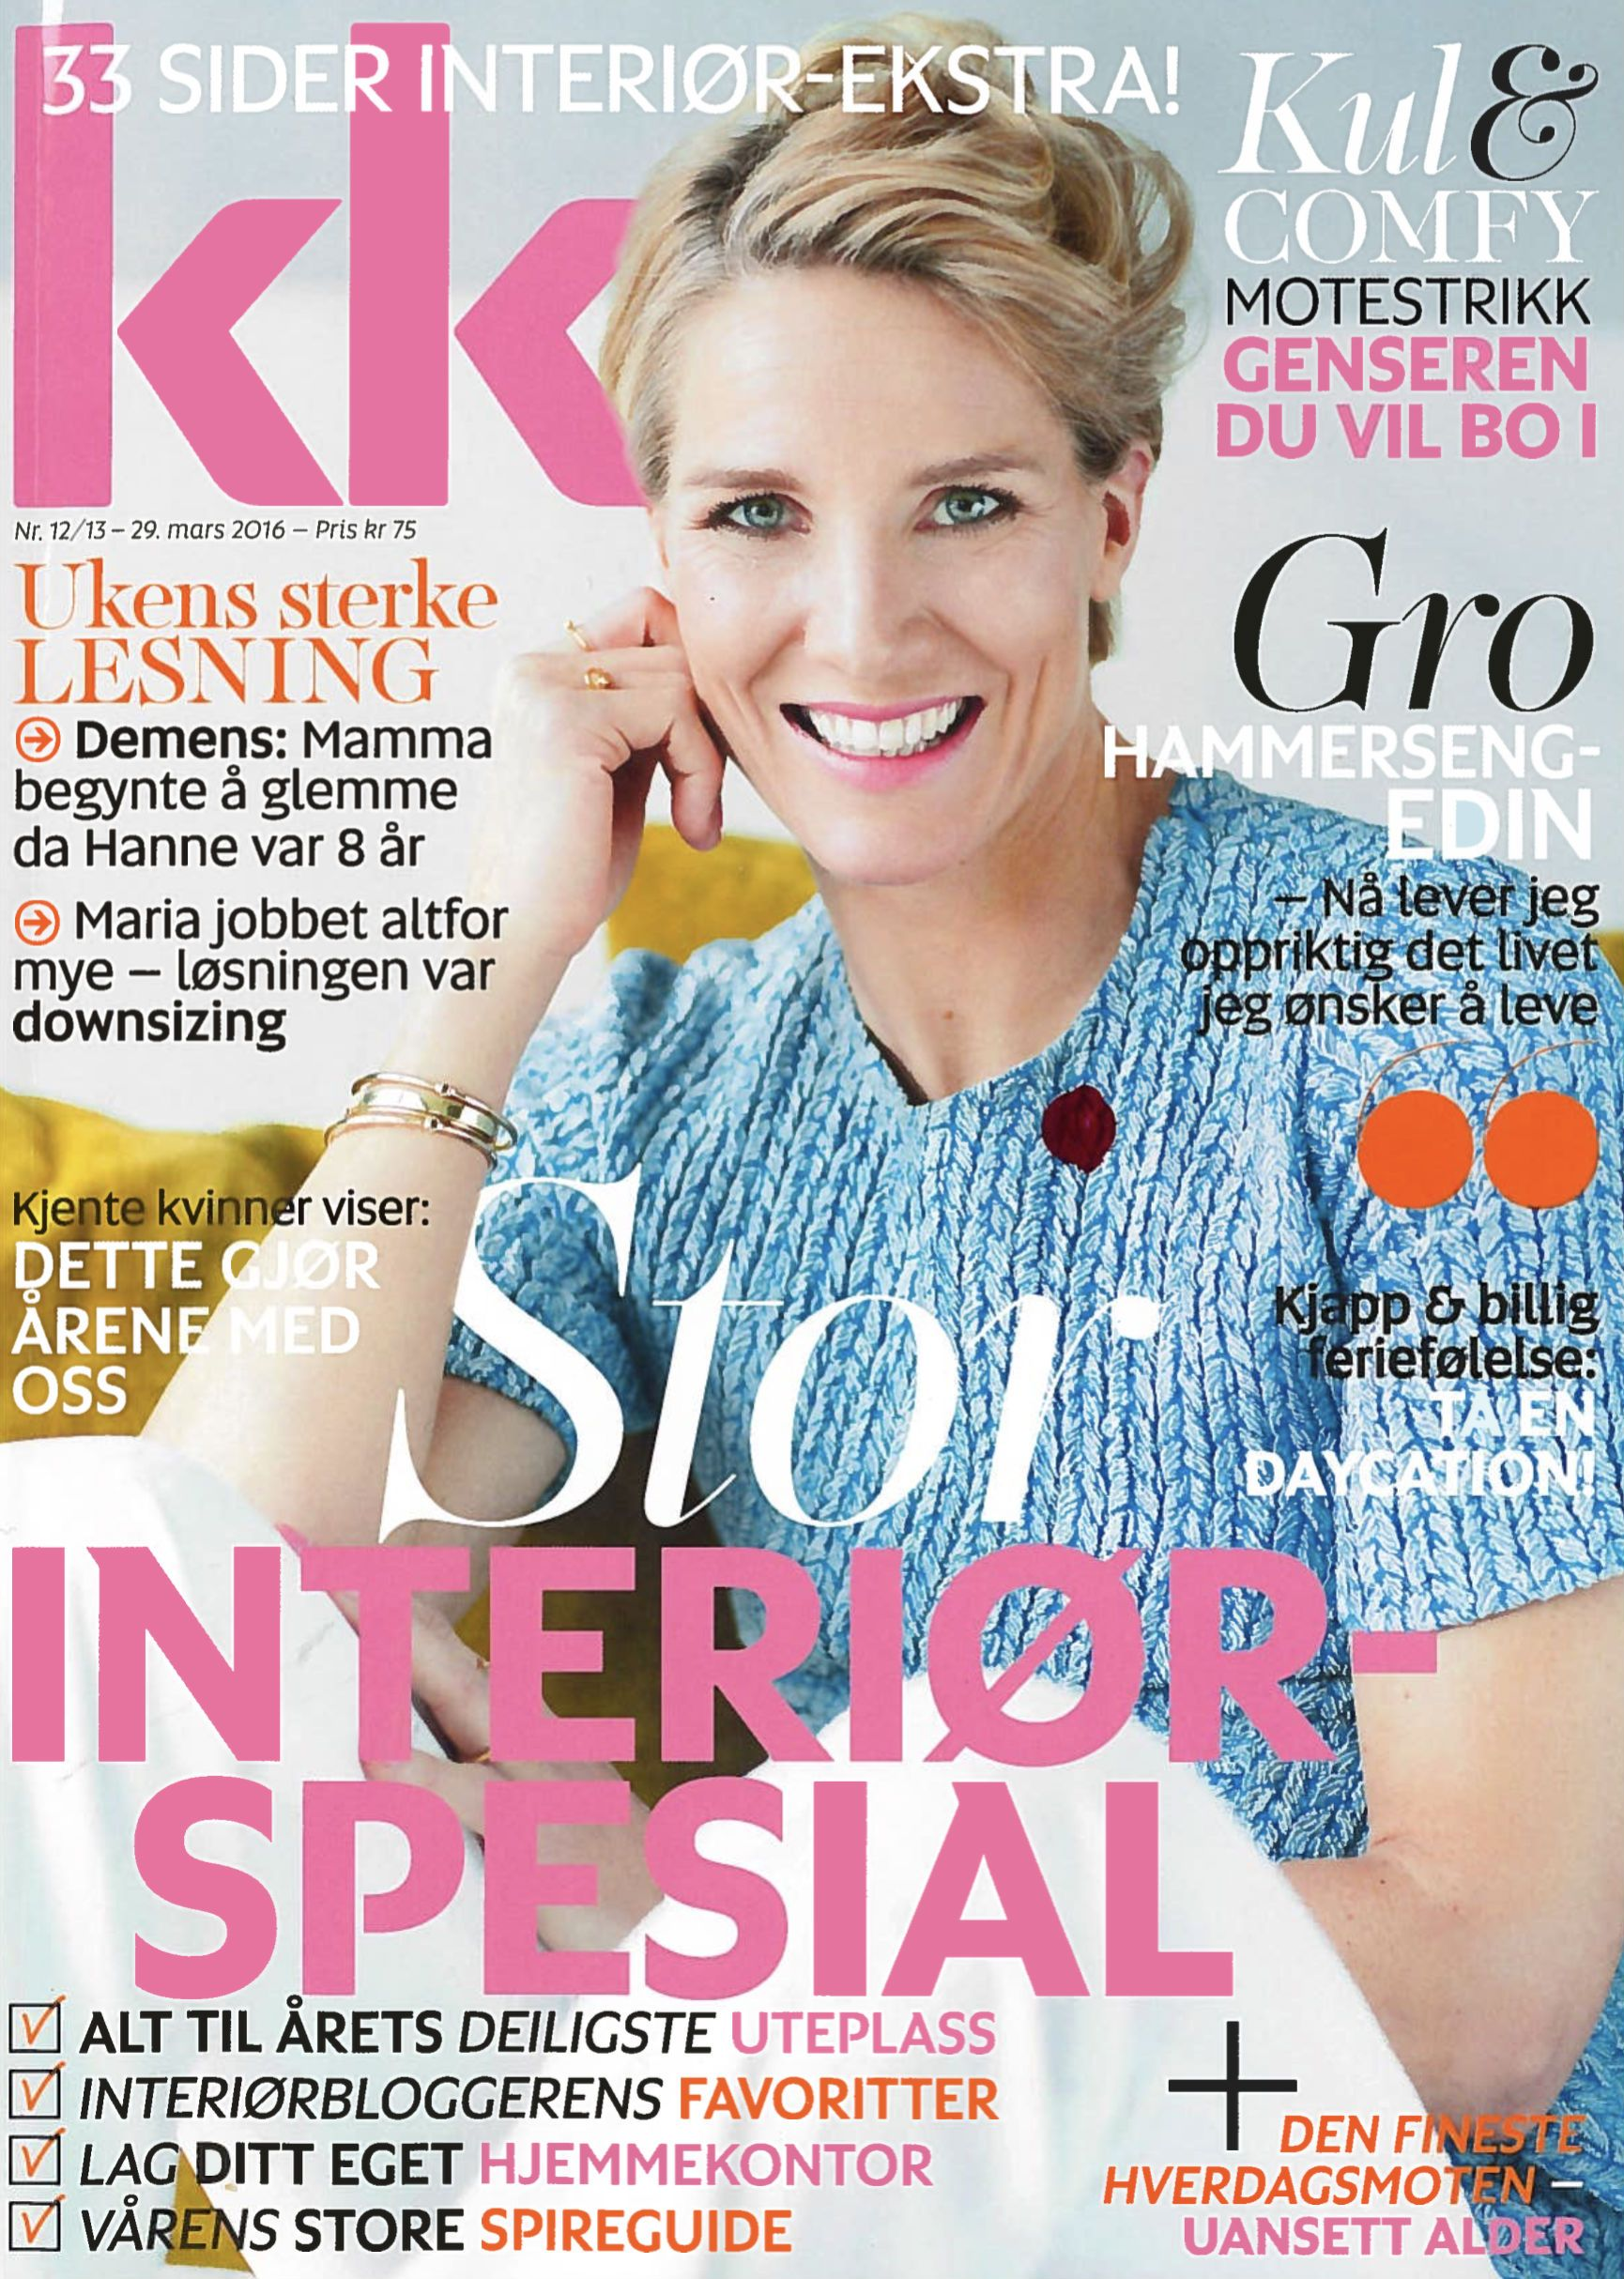 Norwegian KK magazine presents classic and cool styling in their ...